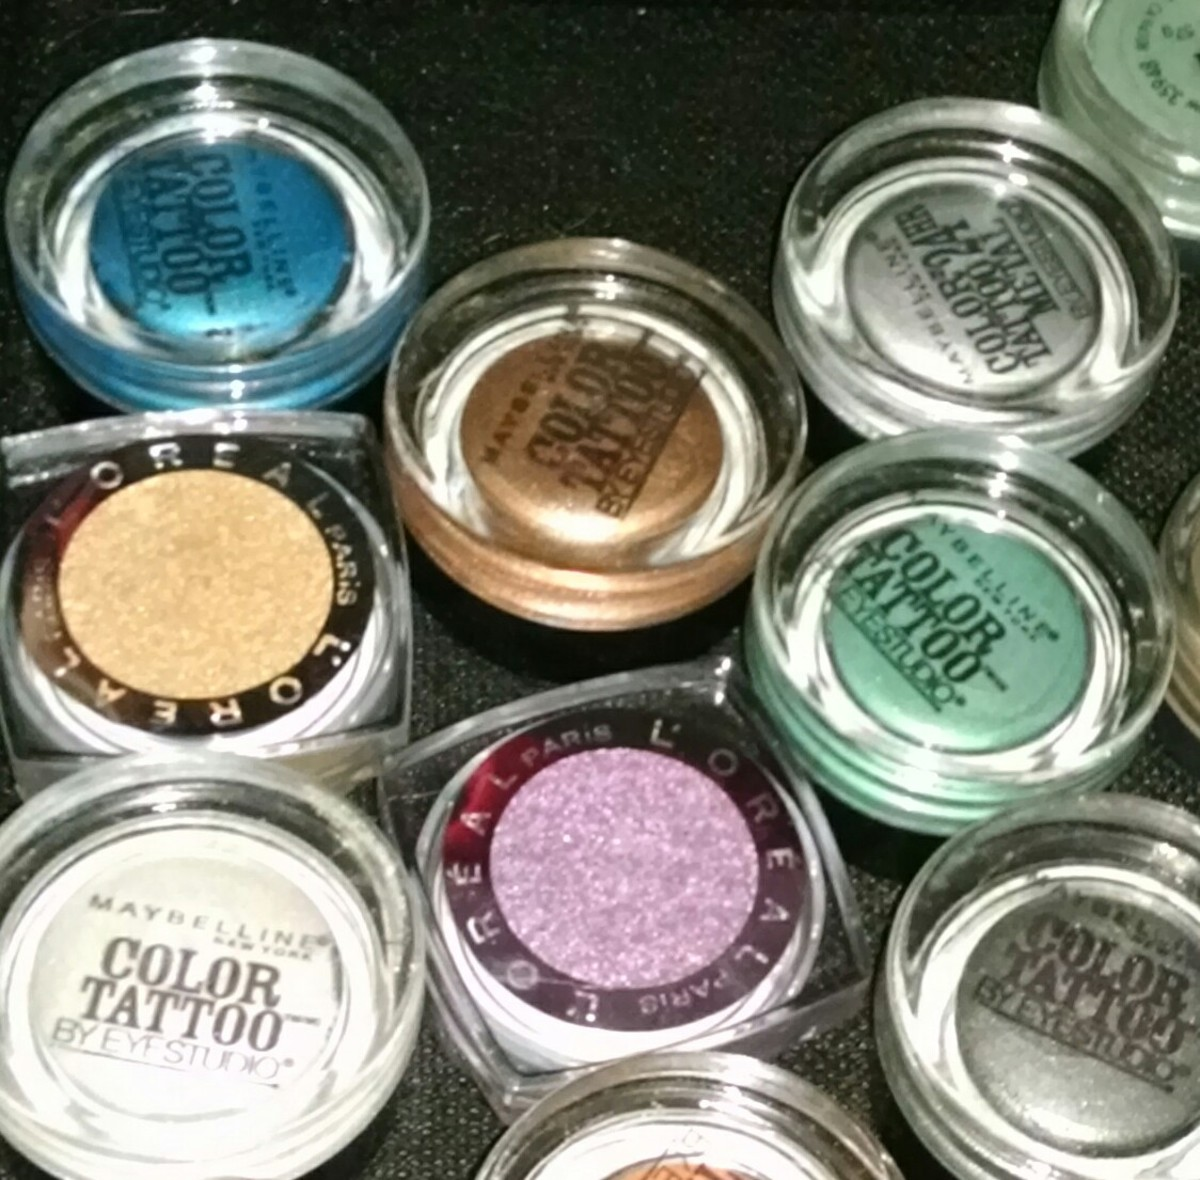 Maybelline Color Tattoo vs. L'Oreal Infallible Eye Shadow - Which Is the Best Drugstore Eyeshadow?